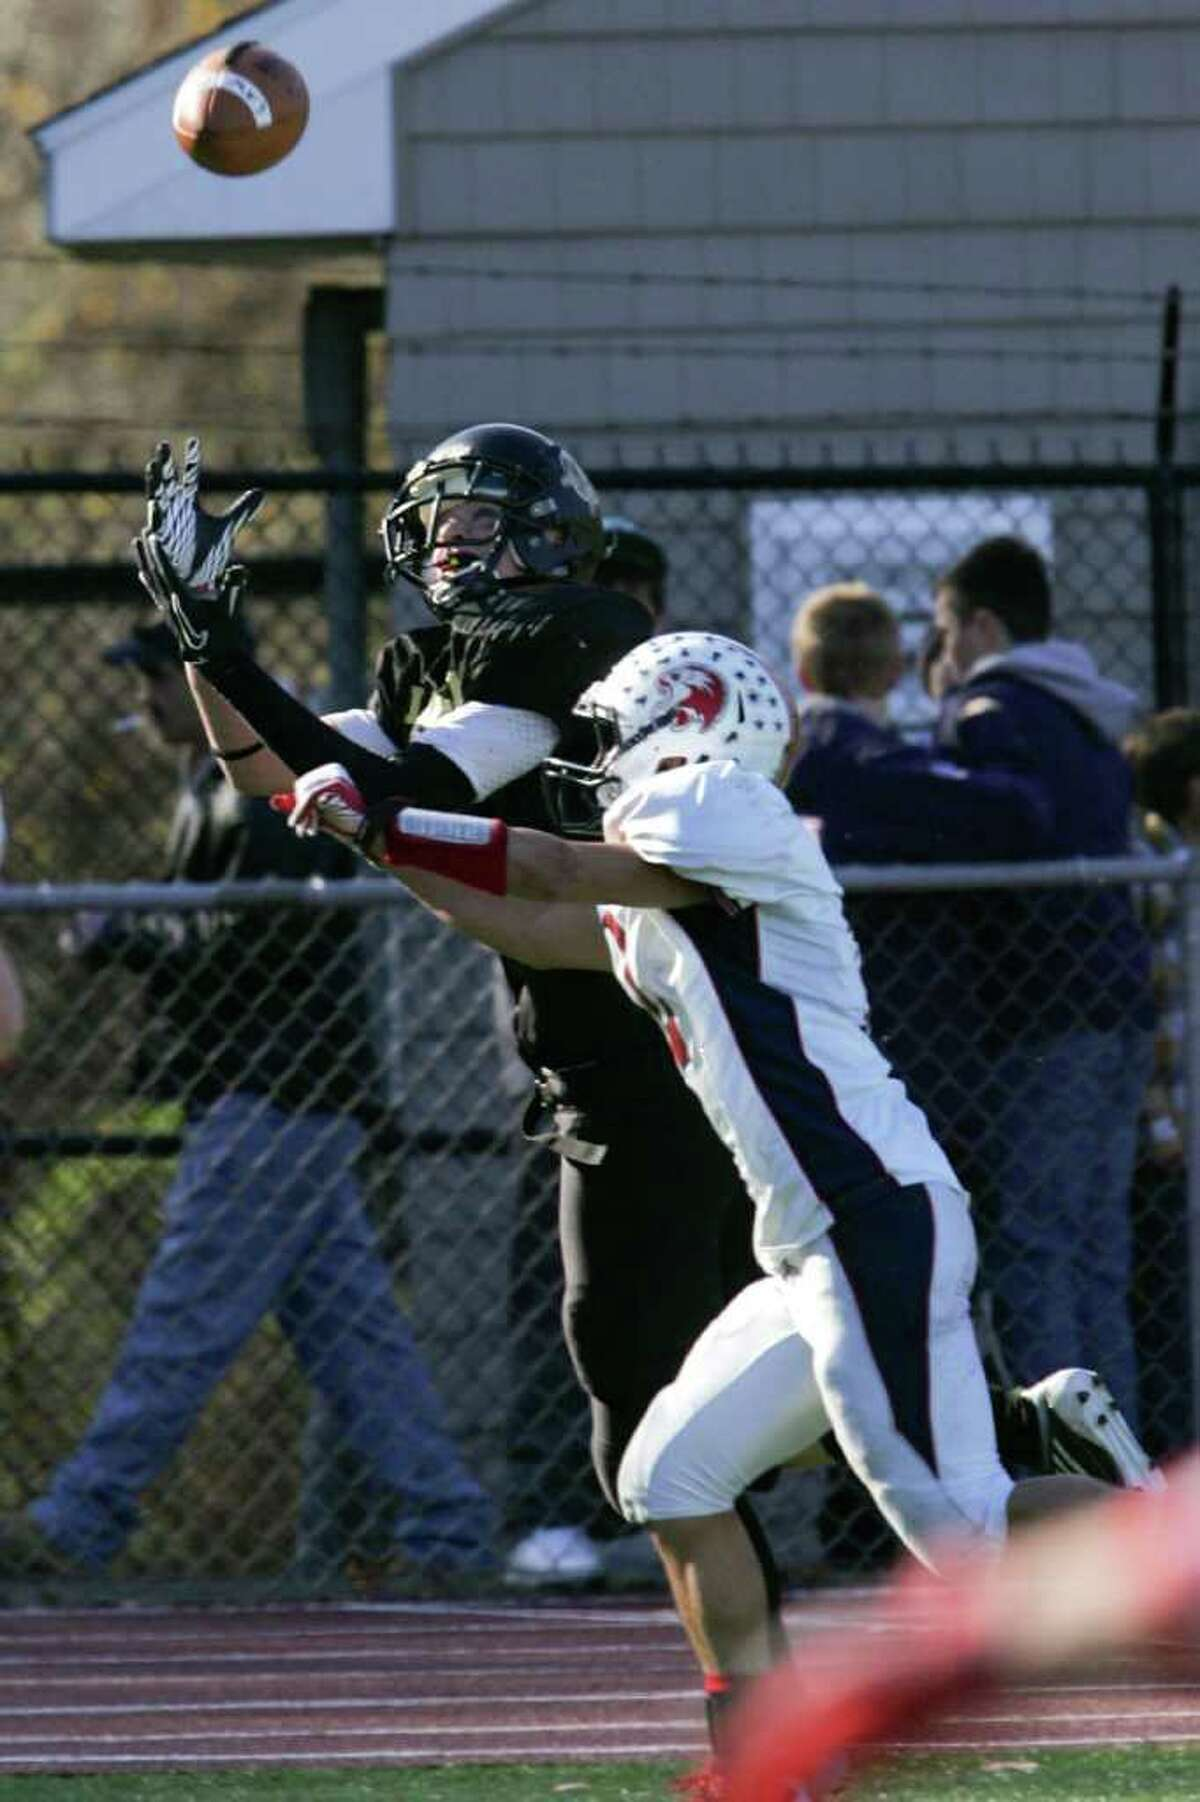 Jonathan Law High School #5 Connor Falaguerra eyes the ball for a touchdown as Foran High School's # 2 Nicholas Weissauer defends during second half action on Thankgiving Day Match-up. Foran High School would win 48-13.